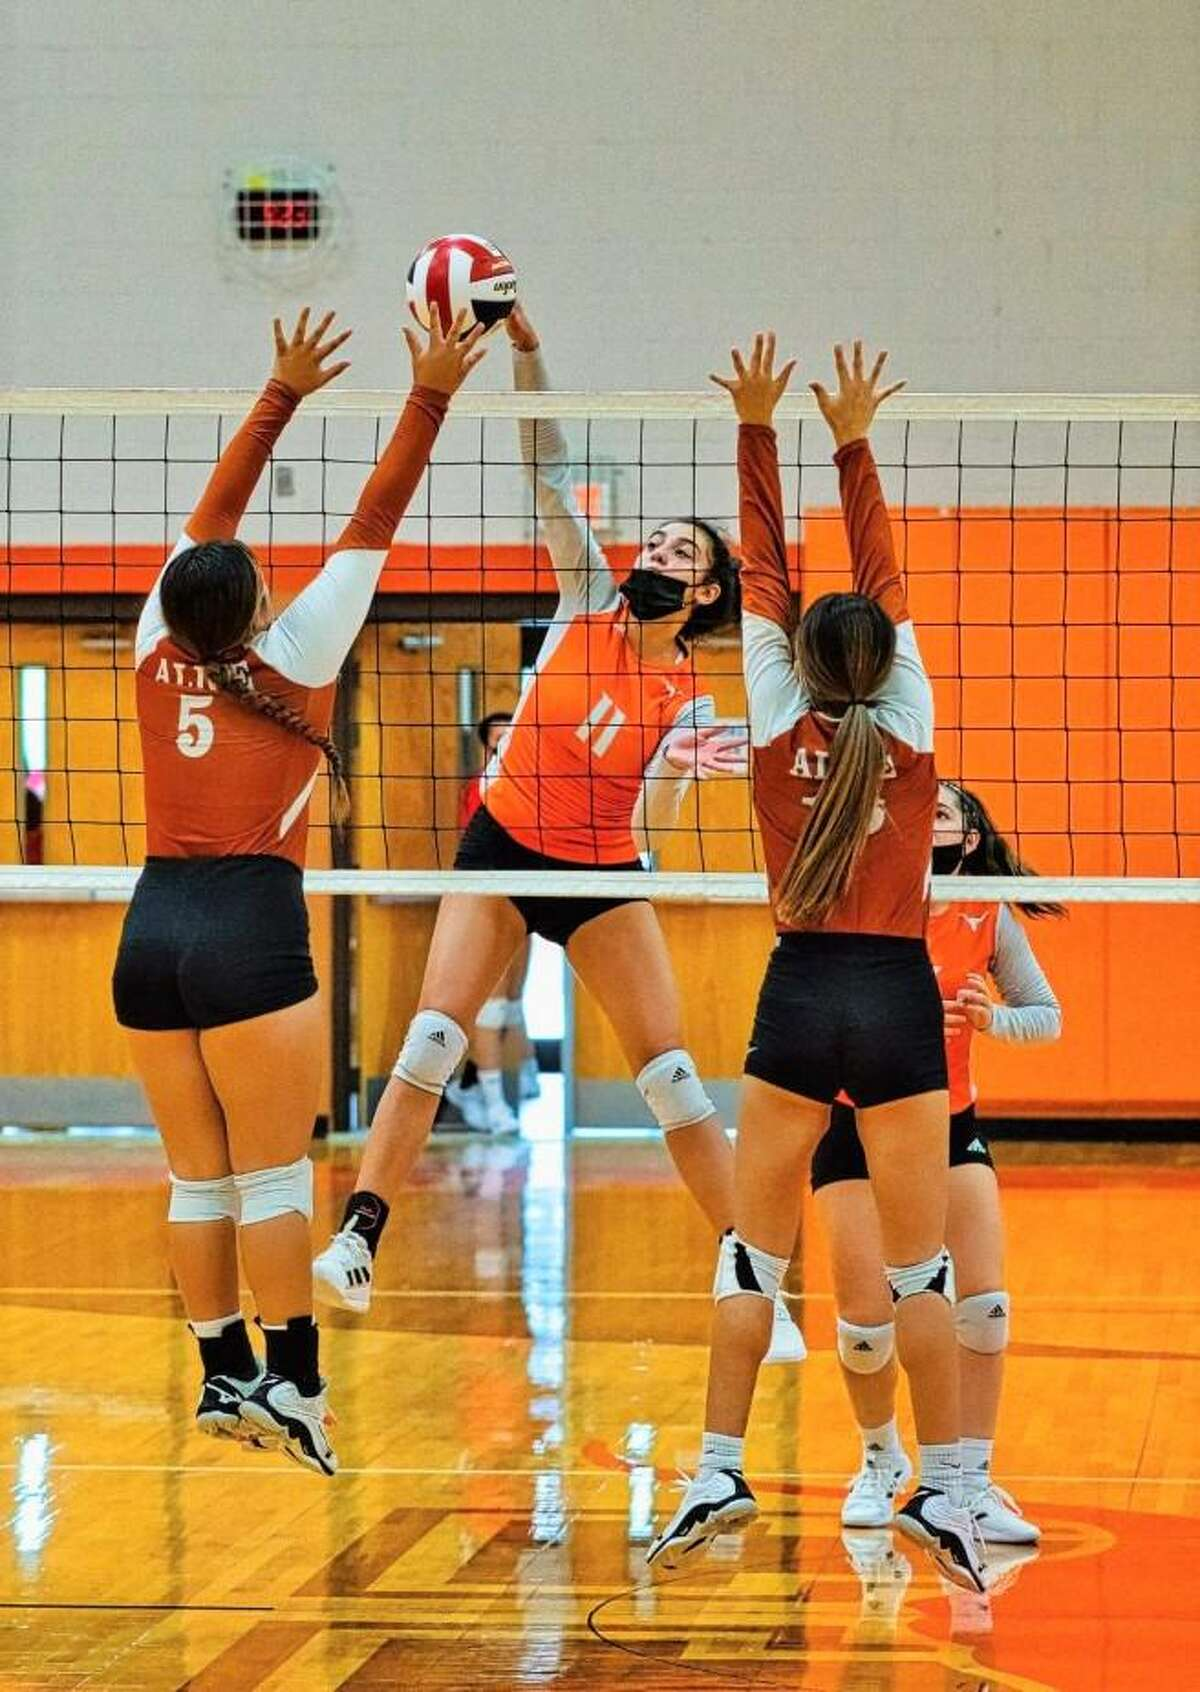 Mia Molina and United went 3-0 to advance to the gold bracket at the Lady Longhorn Fest touranment.